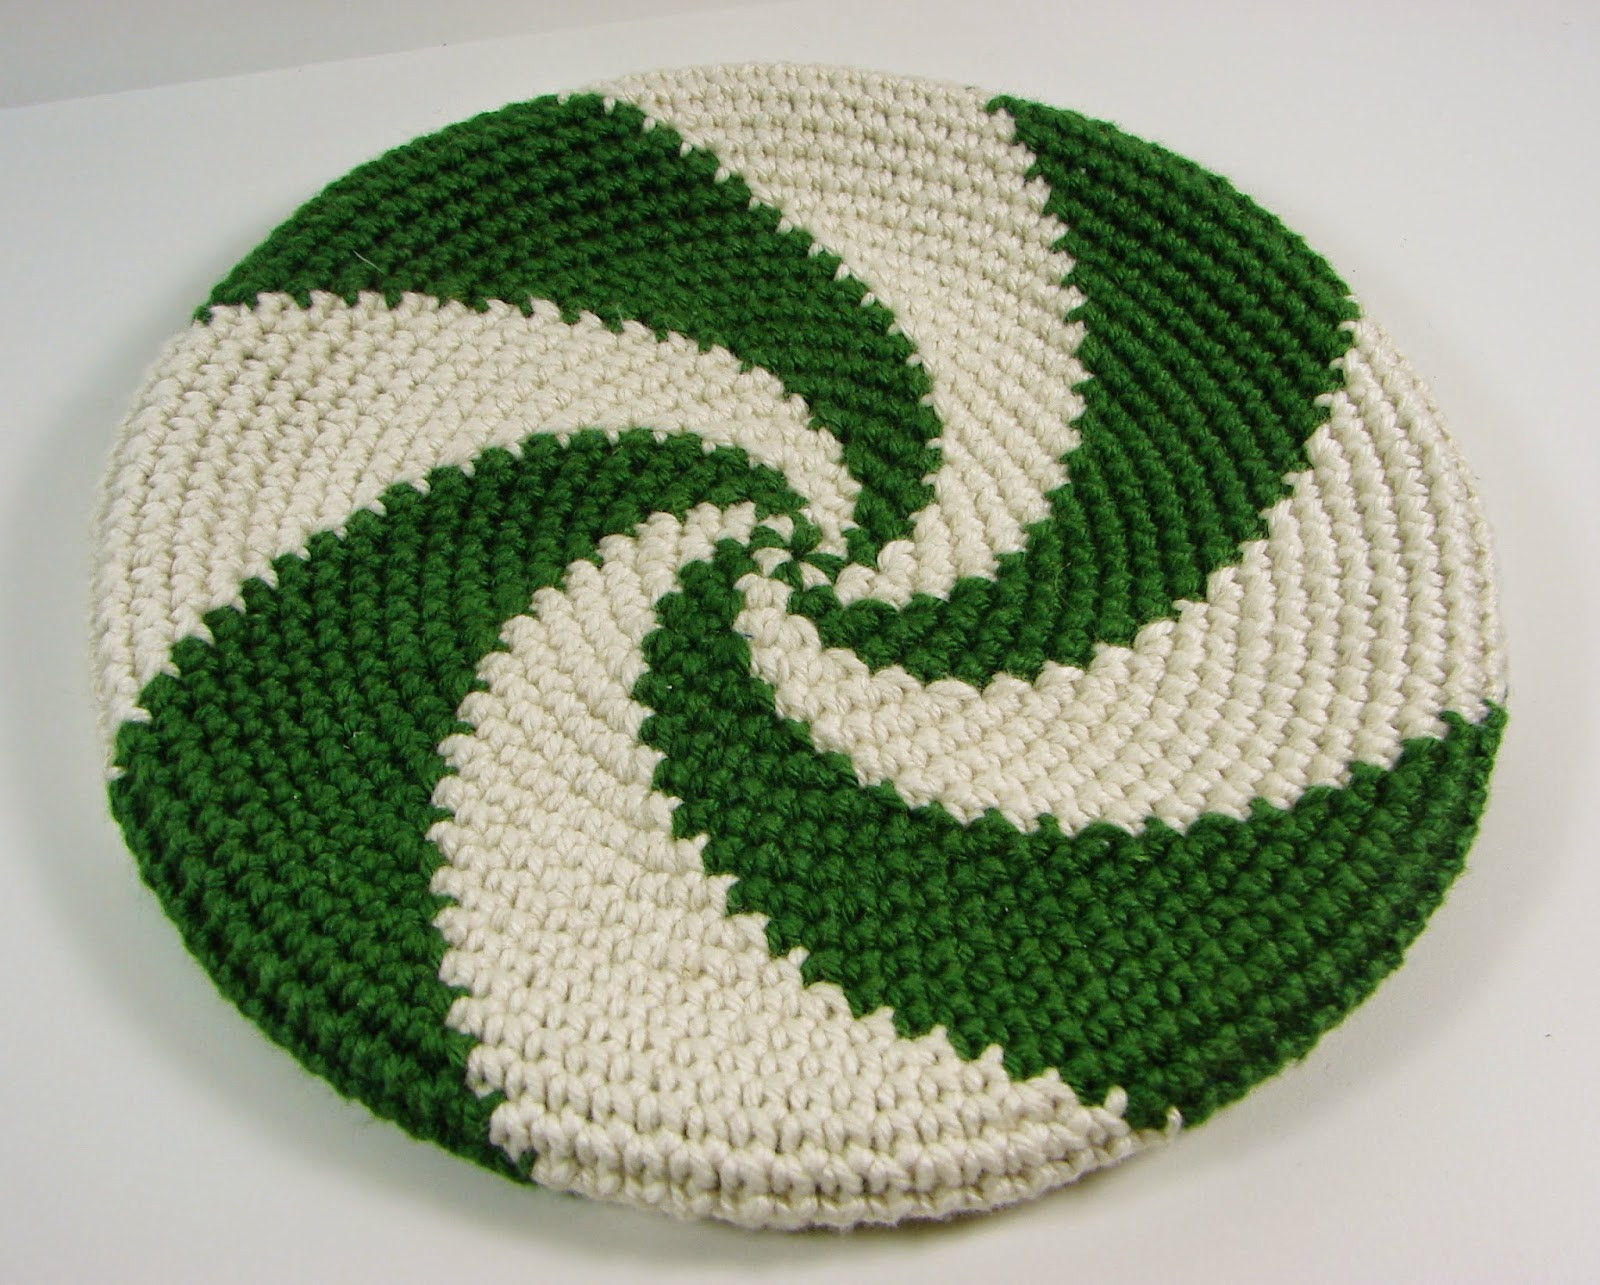 disc, frisbee, crochet, crocheted, toy, green, white